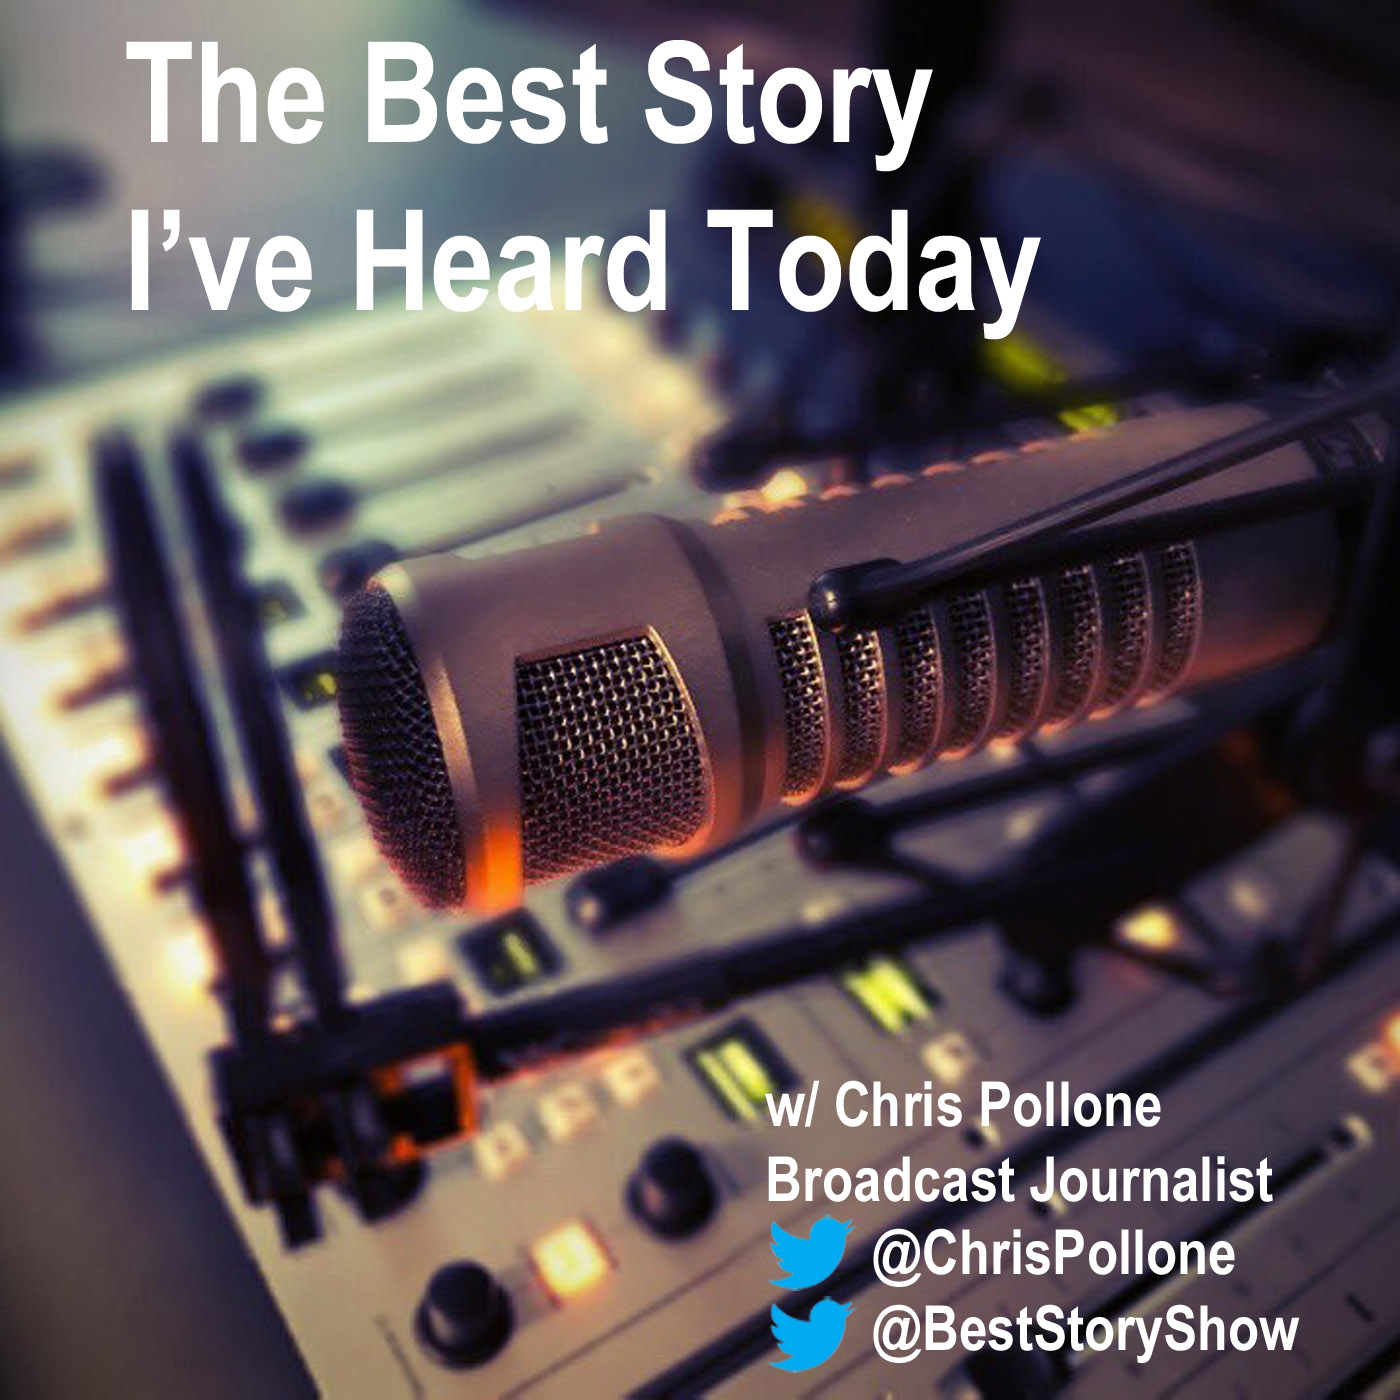 The Best Story I've Heard Today with broadcast journalist Chris Pollone